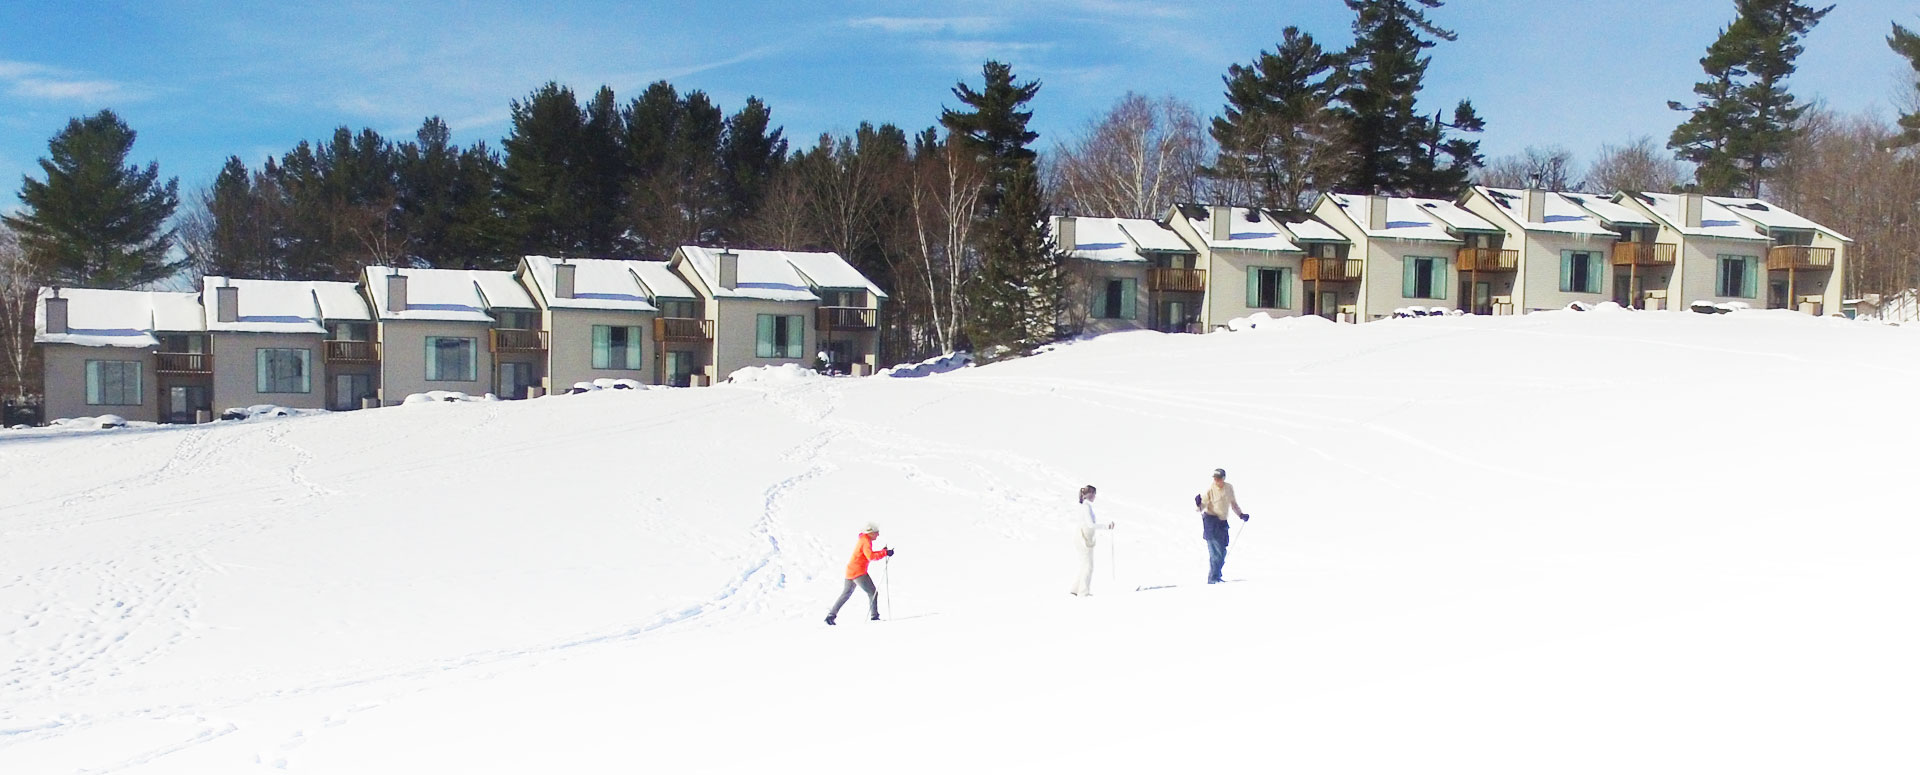 Lake Placid Club Lodges - winter